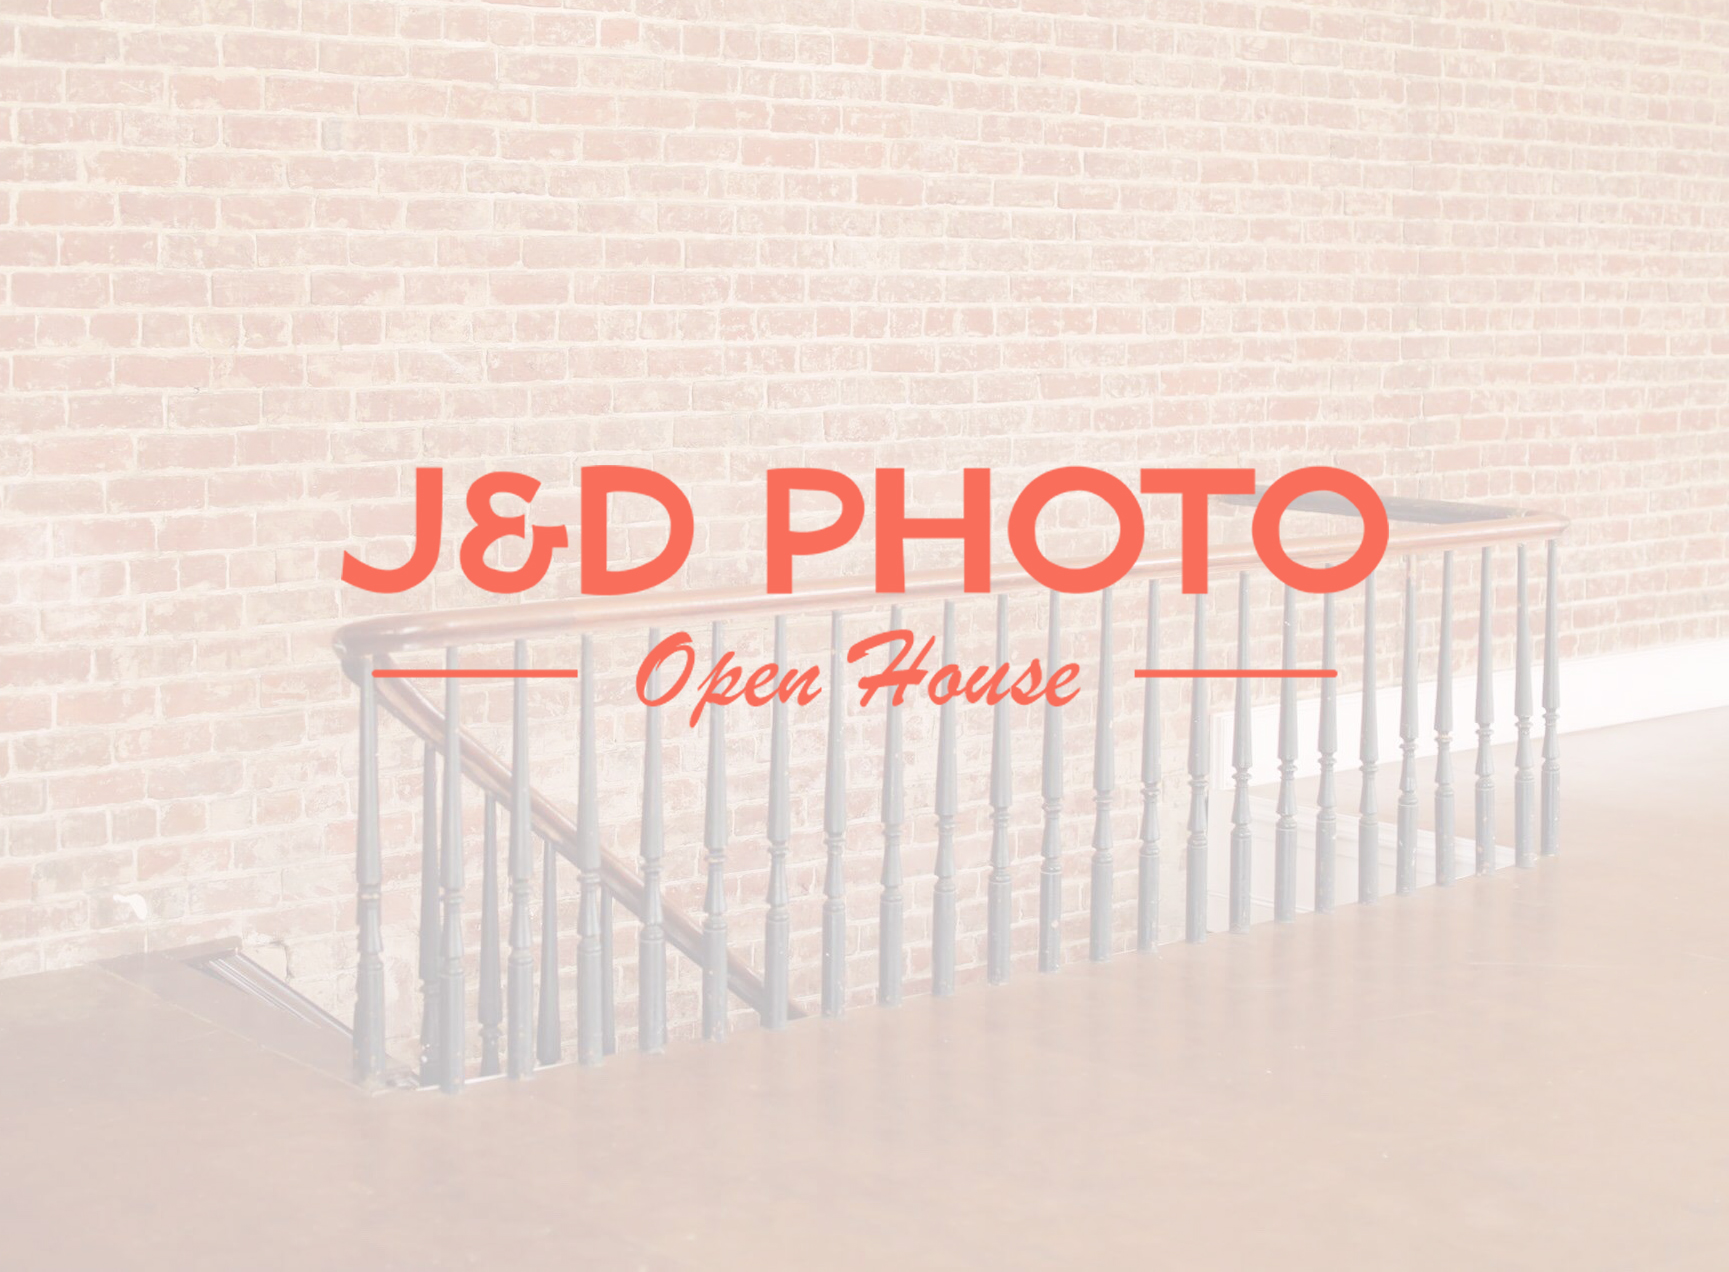 Save The Date  JD Open House - Image Property of www.j-dphoto.com